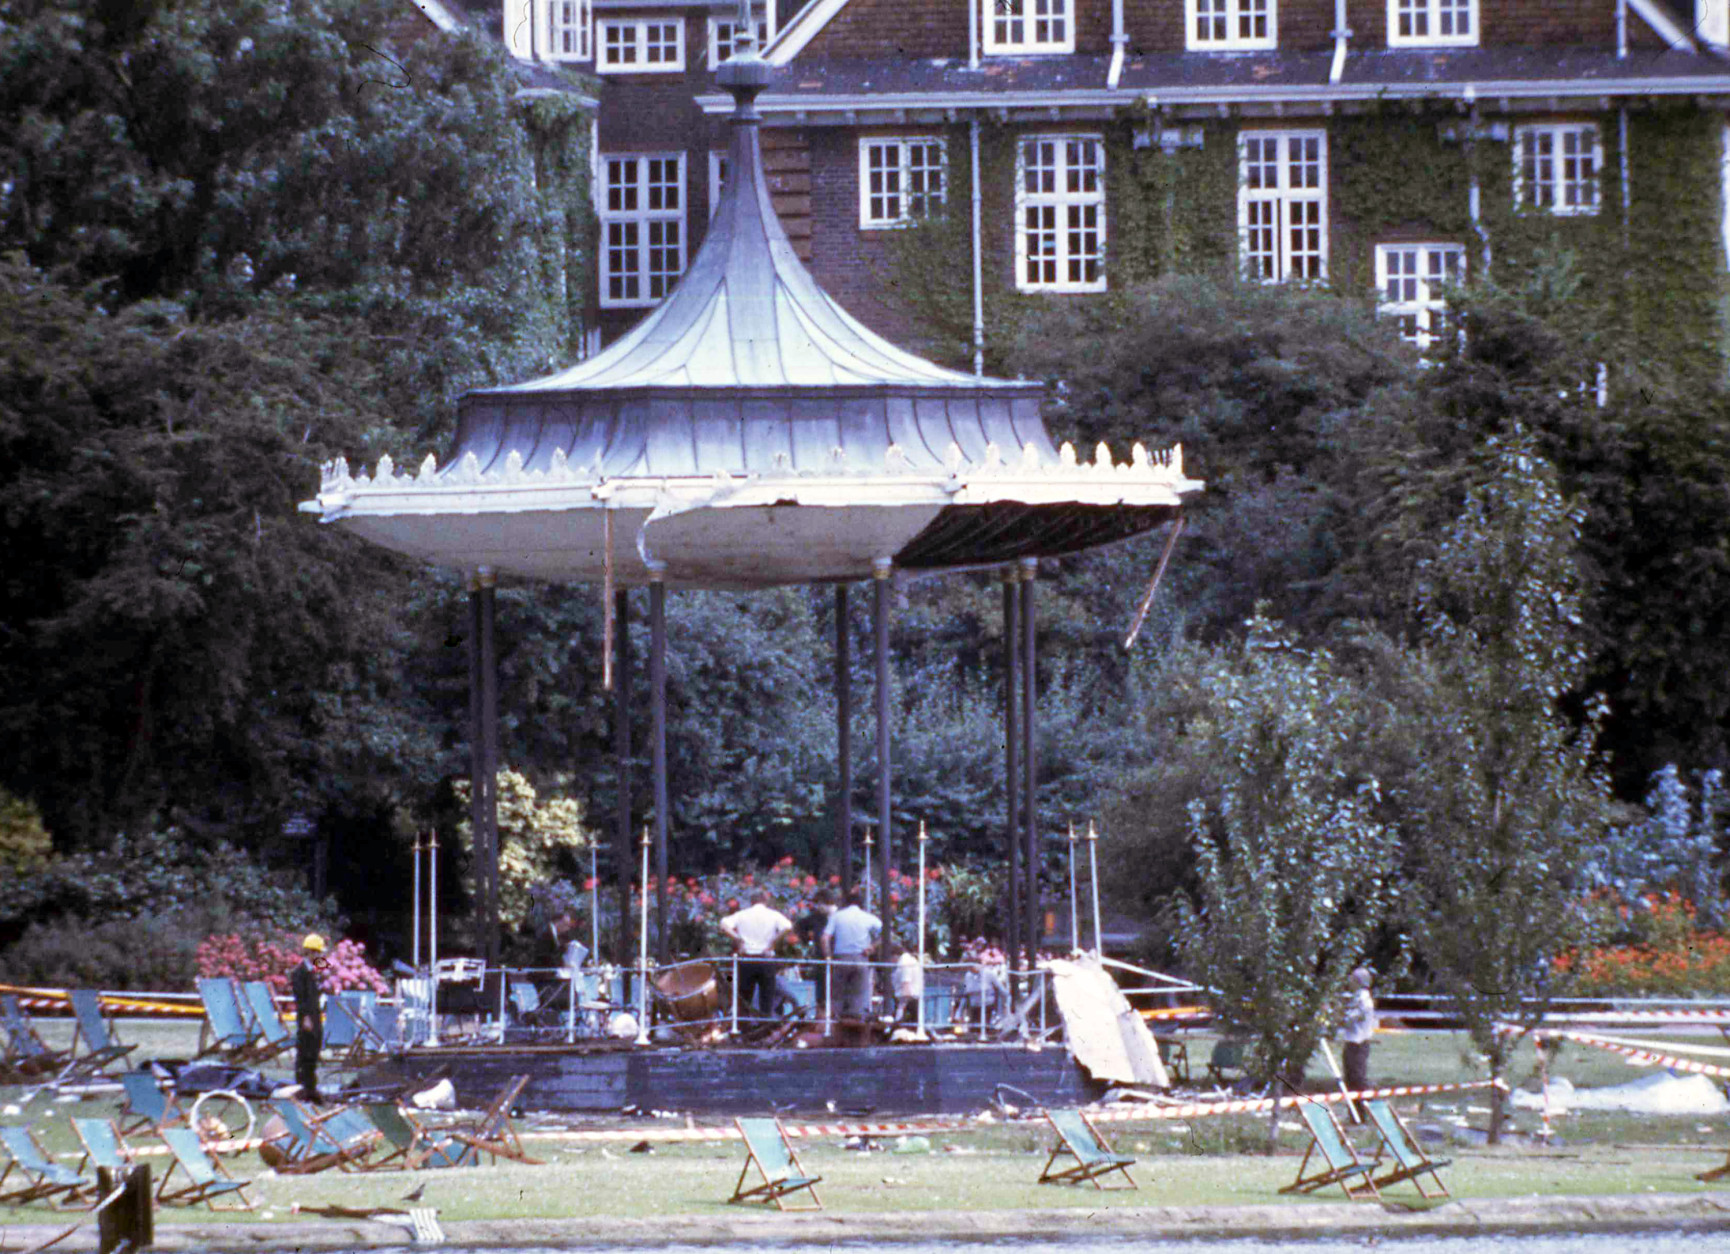 Six soldiers from the Royal Green jackets were killed by an IRA bomb under the Bandstand in Hyde Park, London, July 20, 1982, and a further 24 were injured. This bomb went off two hours after another bomb killed two soldiers and seven horses of the Queens Household Cavalry. (AP Photo/Staff/Kemp)